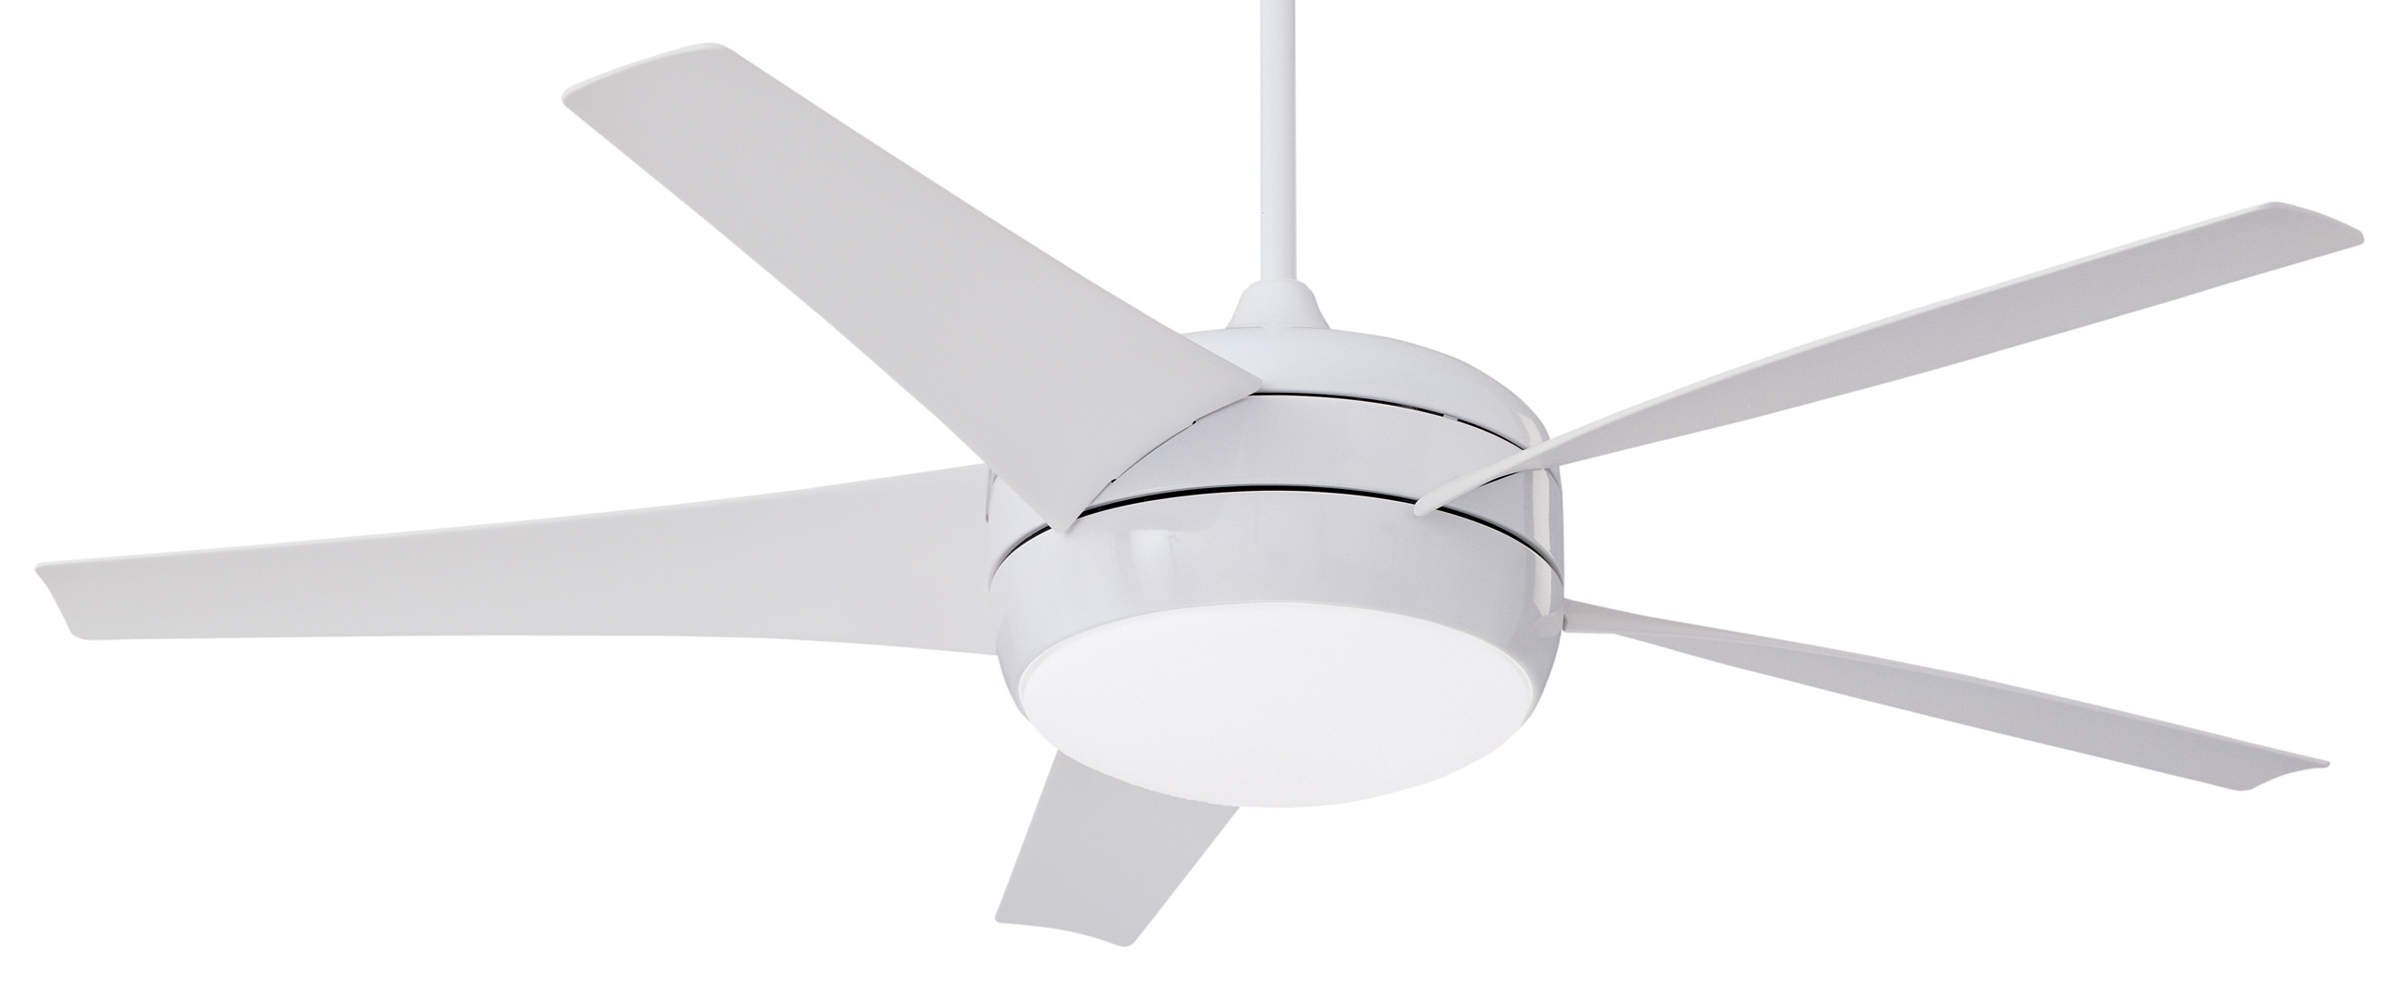 Most Popular Modern Outdoor Ceiling Fans With Lights Throughout Emerson Midway Eco Dc Motor Ceiling Fan Cfww In Gloss White With (Gallery 18 of 20)